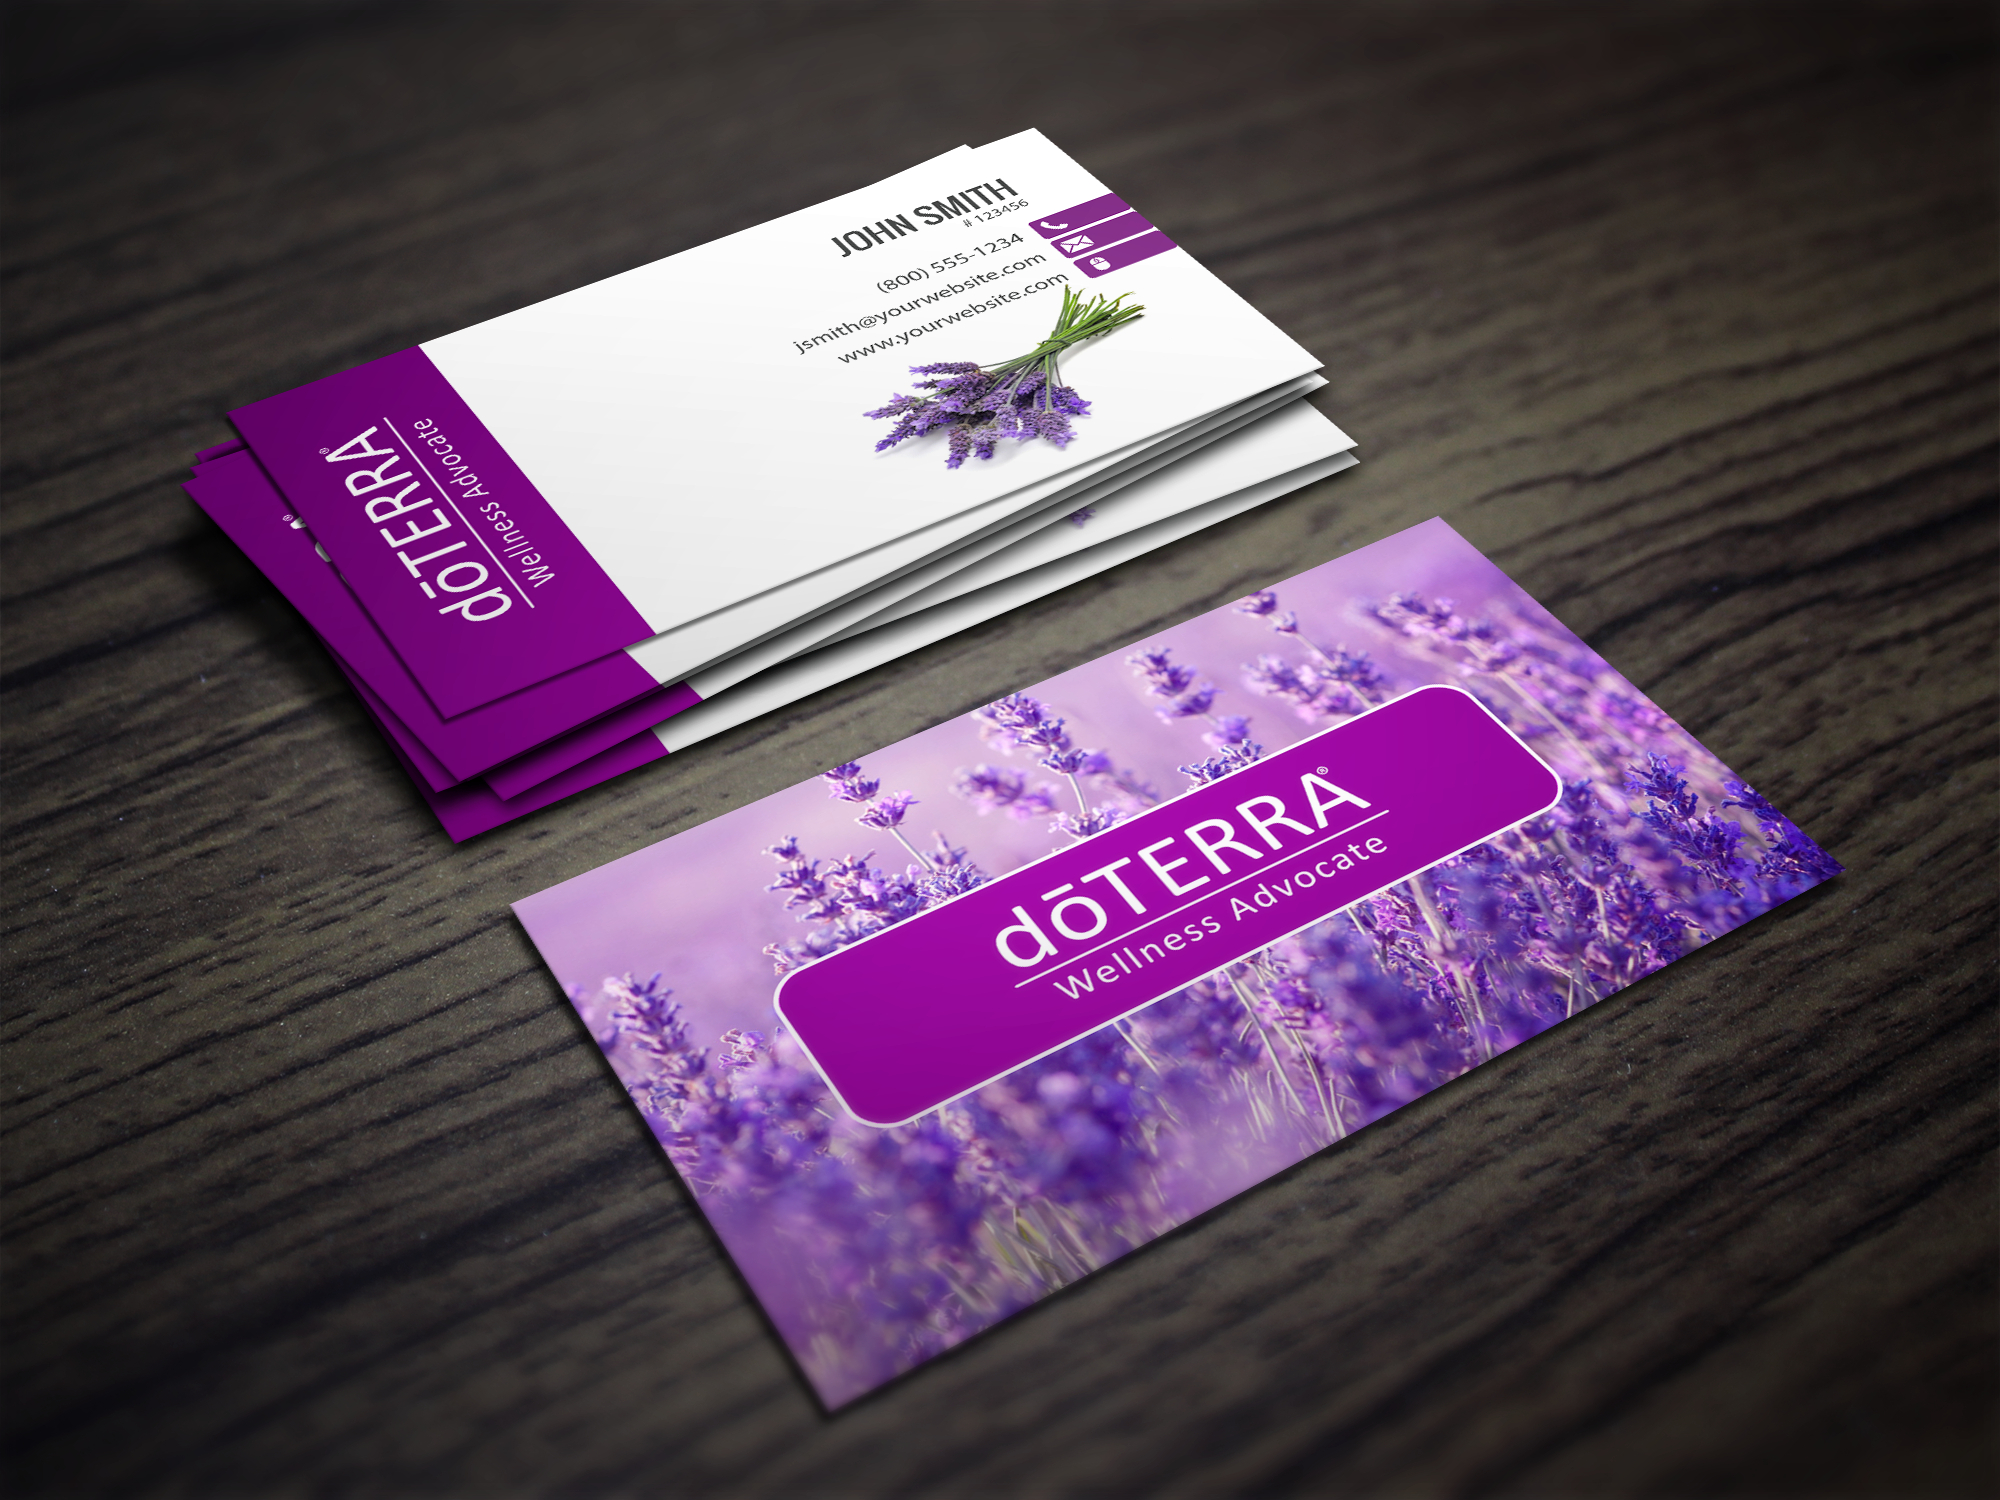 Doterra Business Cards With A Lavendar Field In The Background - Free Printable Doterra Sample Cards